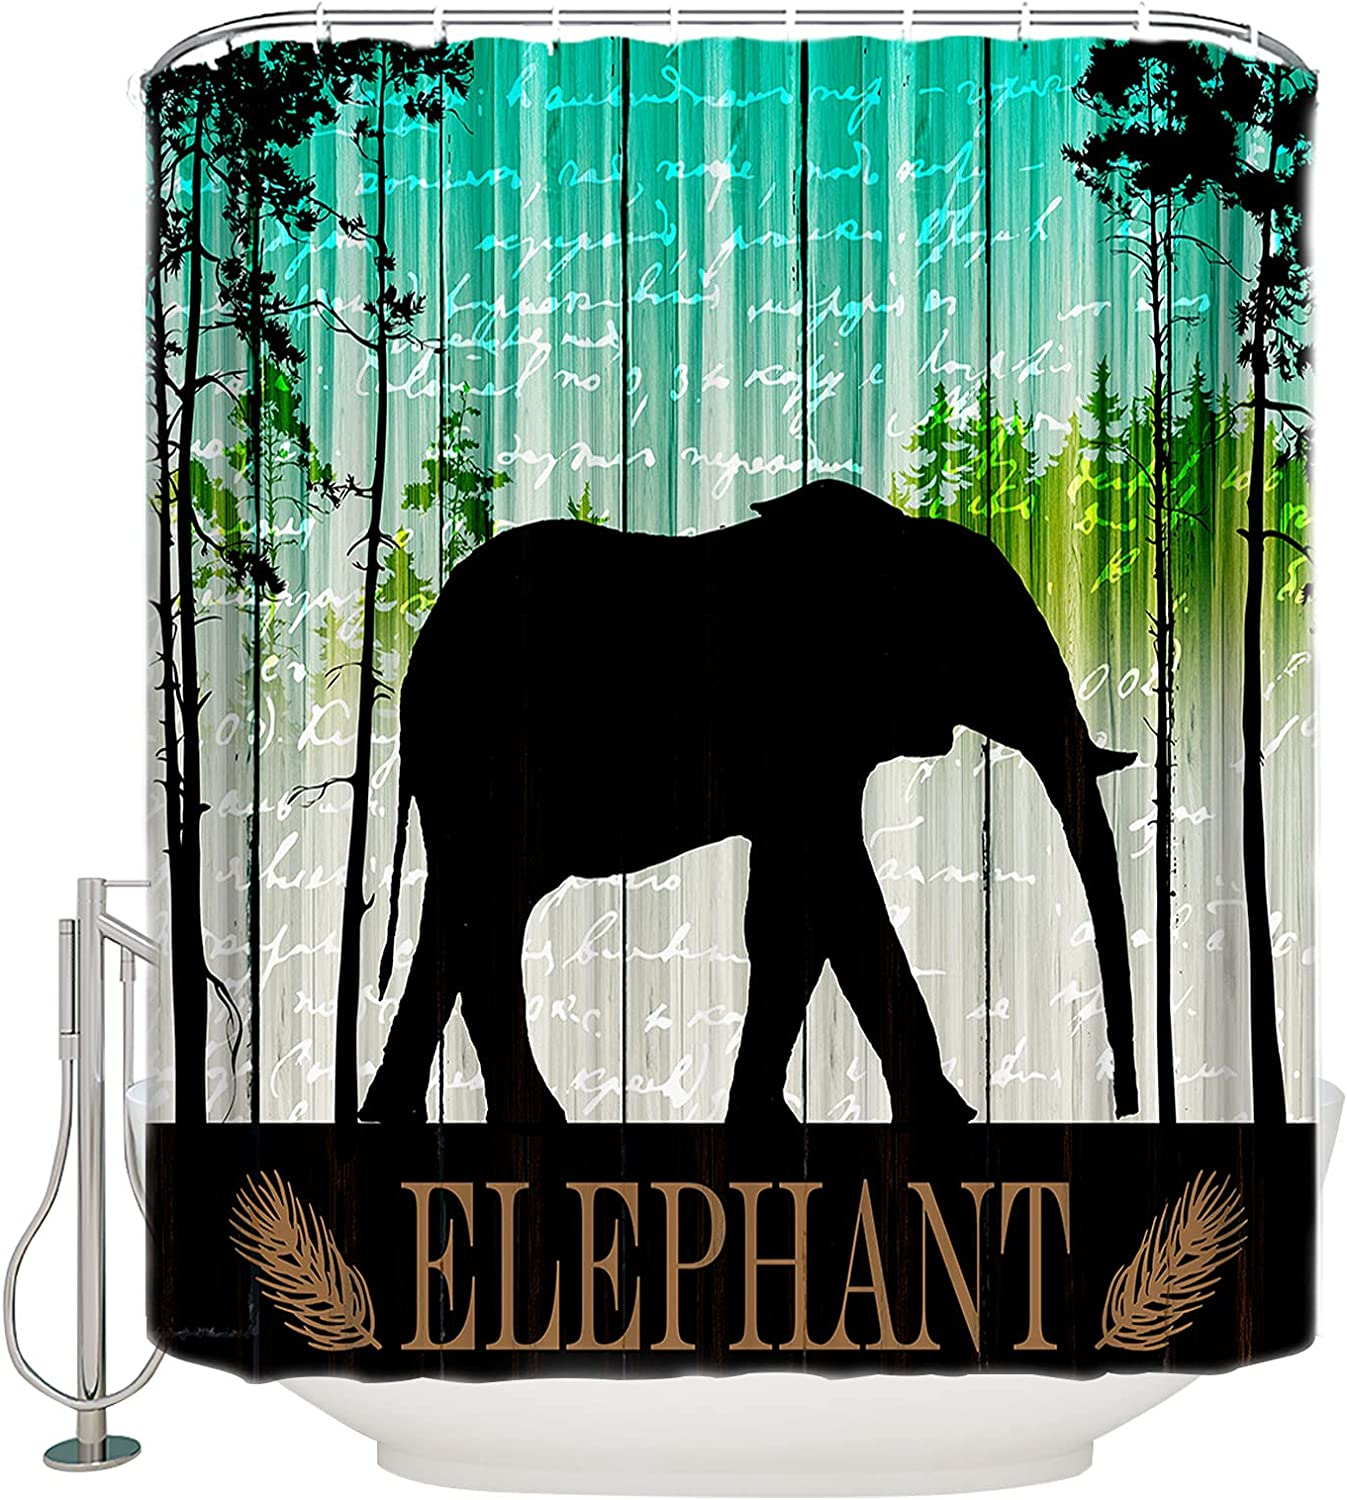 Waterproof Shower Our shop most popular Curtain Popular brand in the world Set with an Silhouette Elephant Hooks